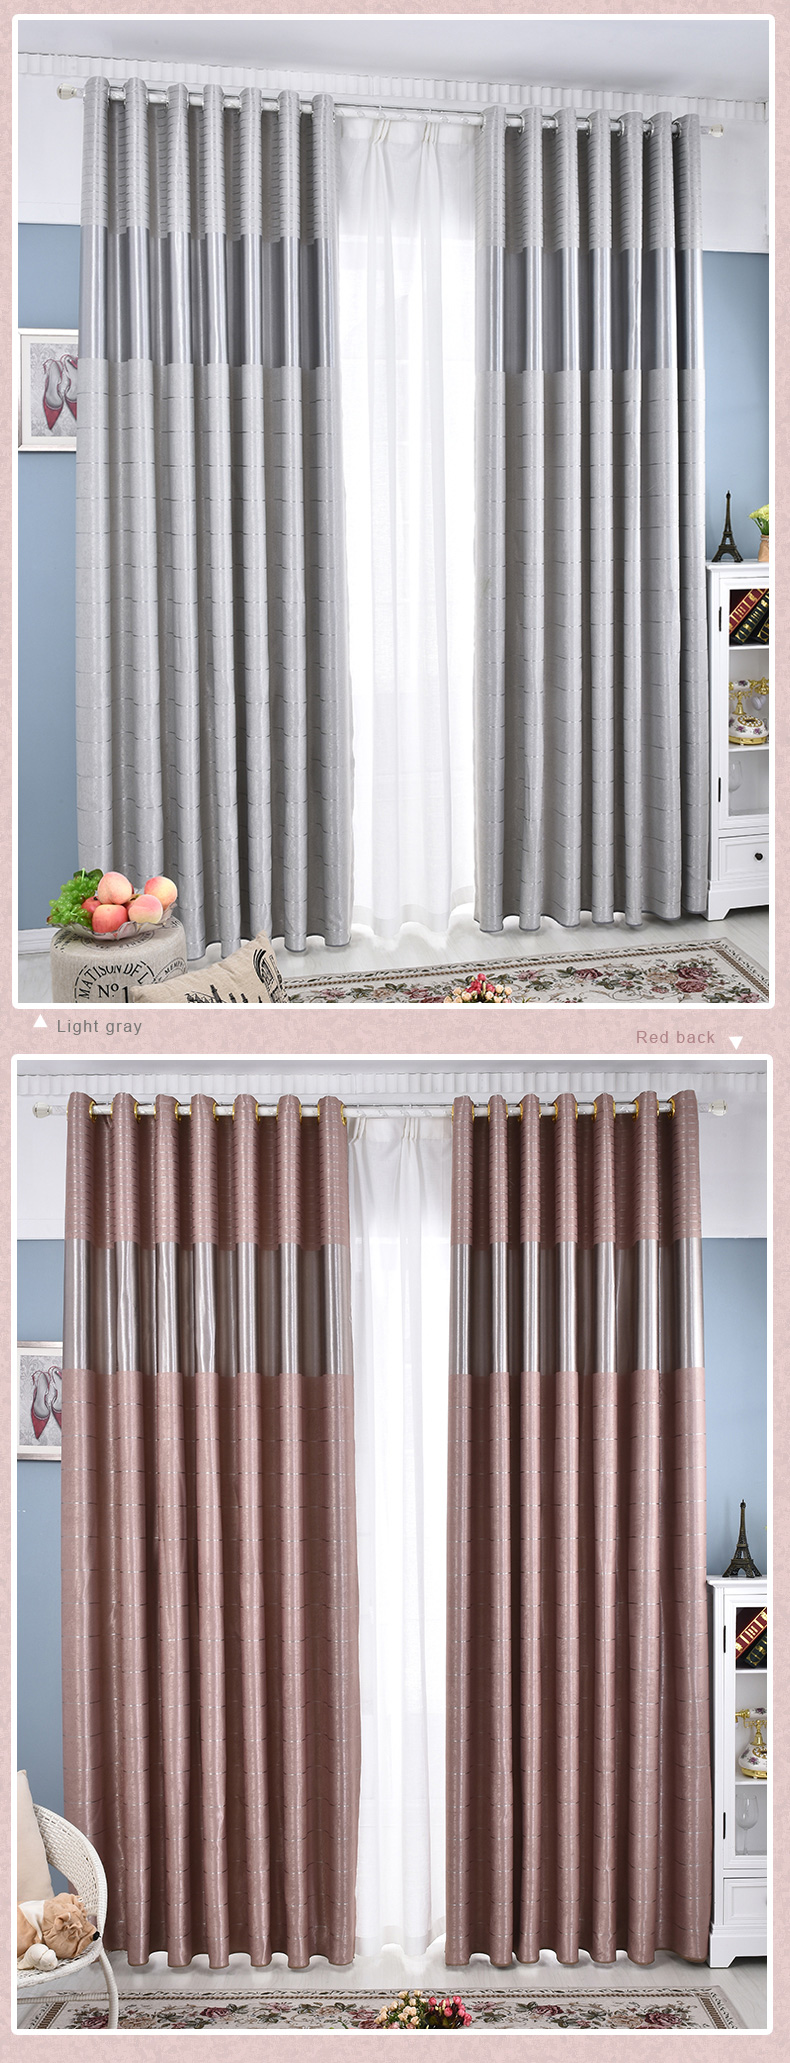 Modern Home Decor Luxury Living Room Blackout Curtains